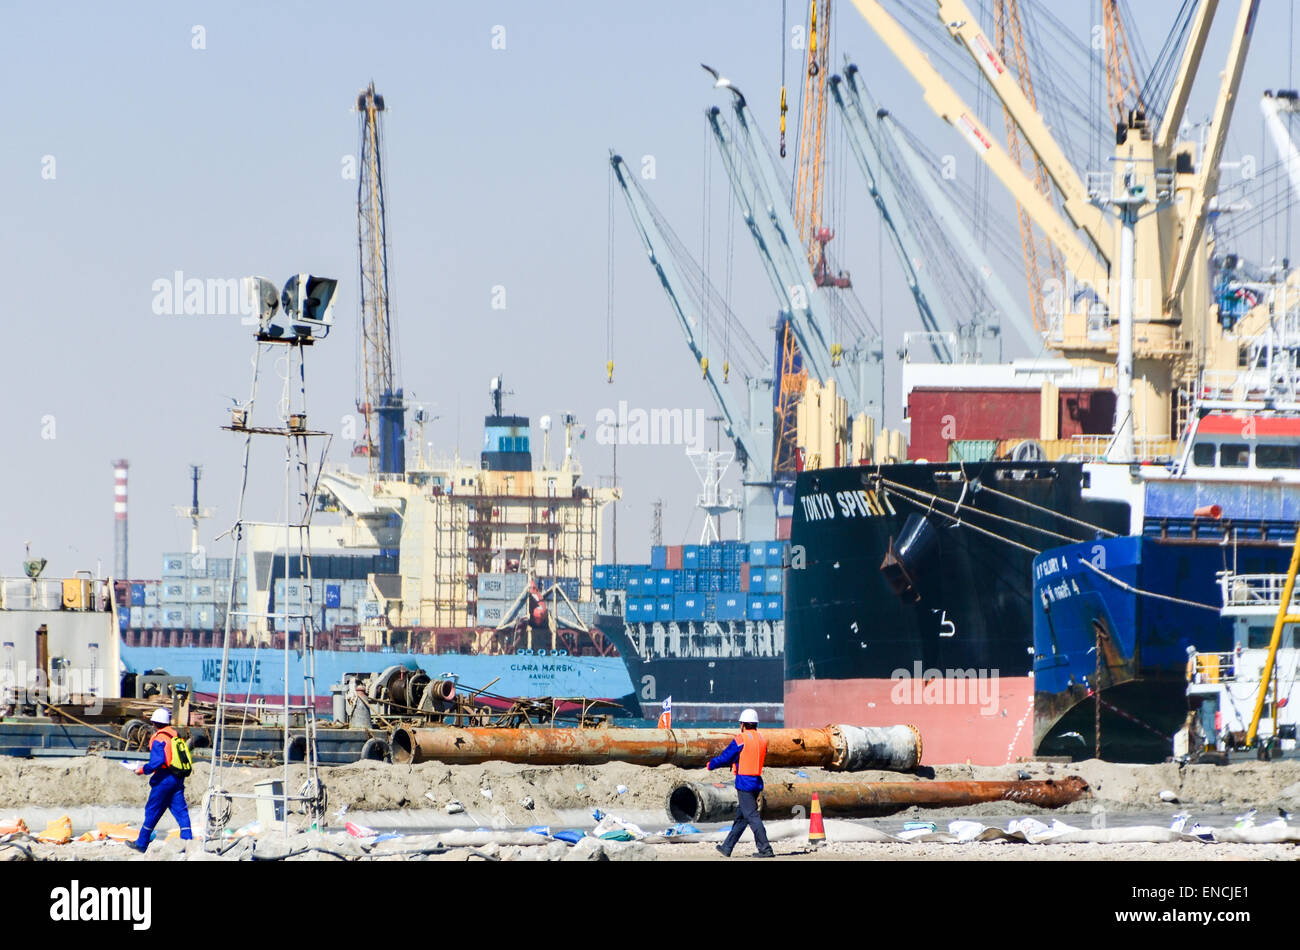 Cargo ships at the terminal of the port of Walvis Bay, Namibia - Stock Image